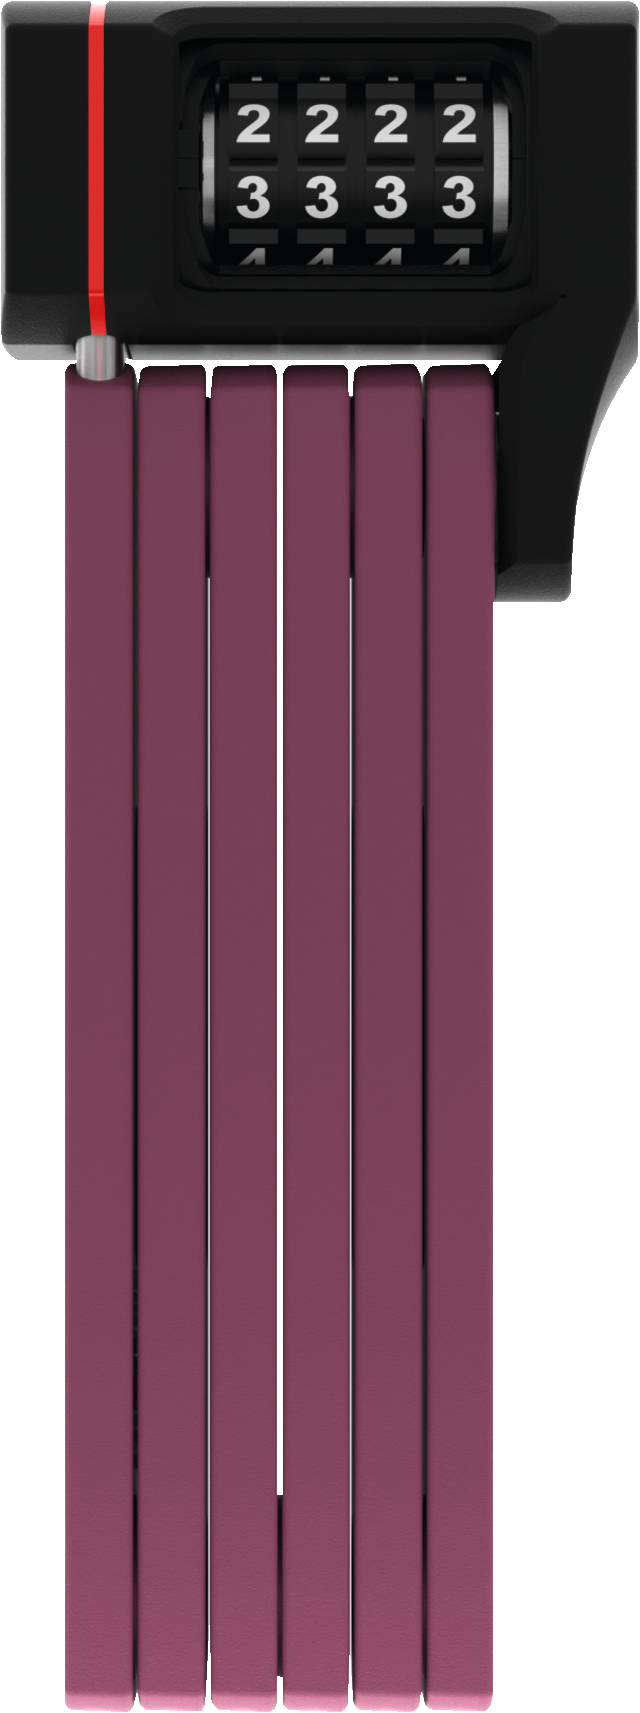 uGrip Bordo 5700C/80 core purple SH